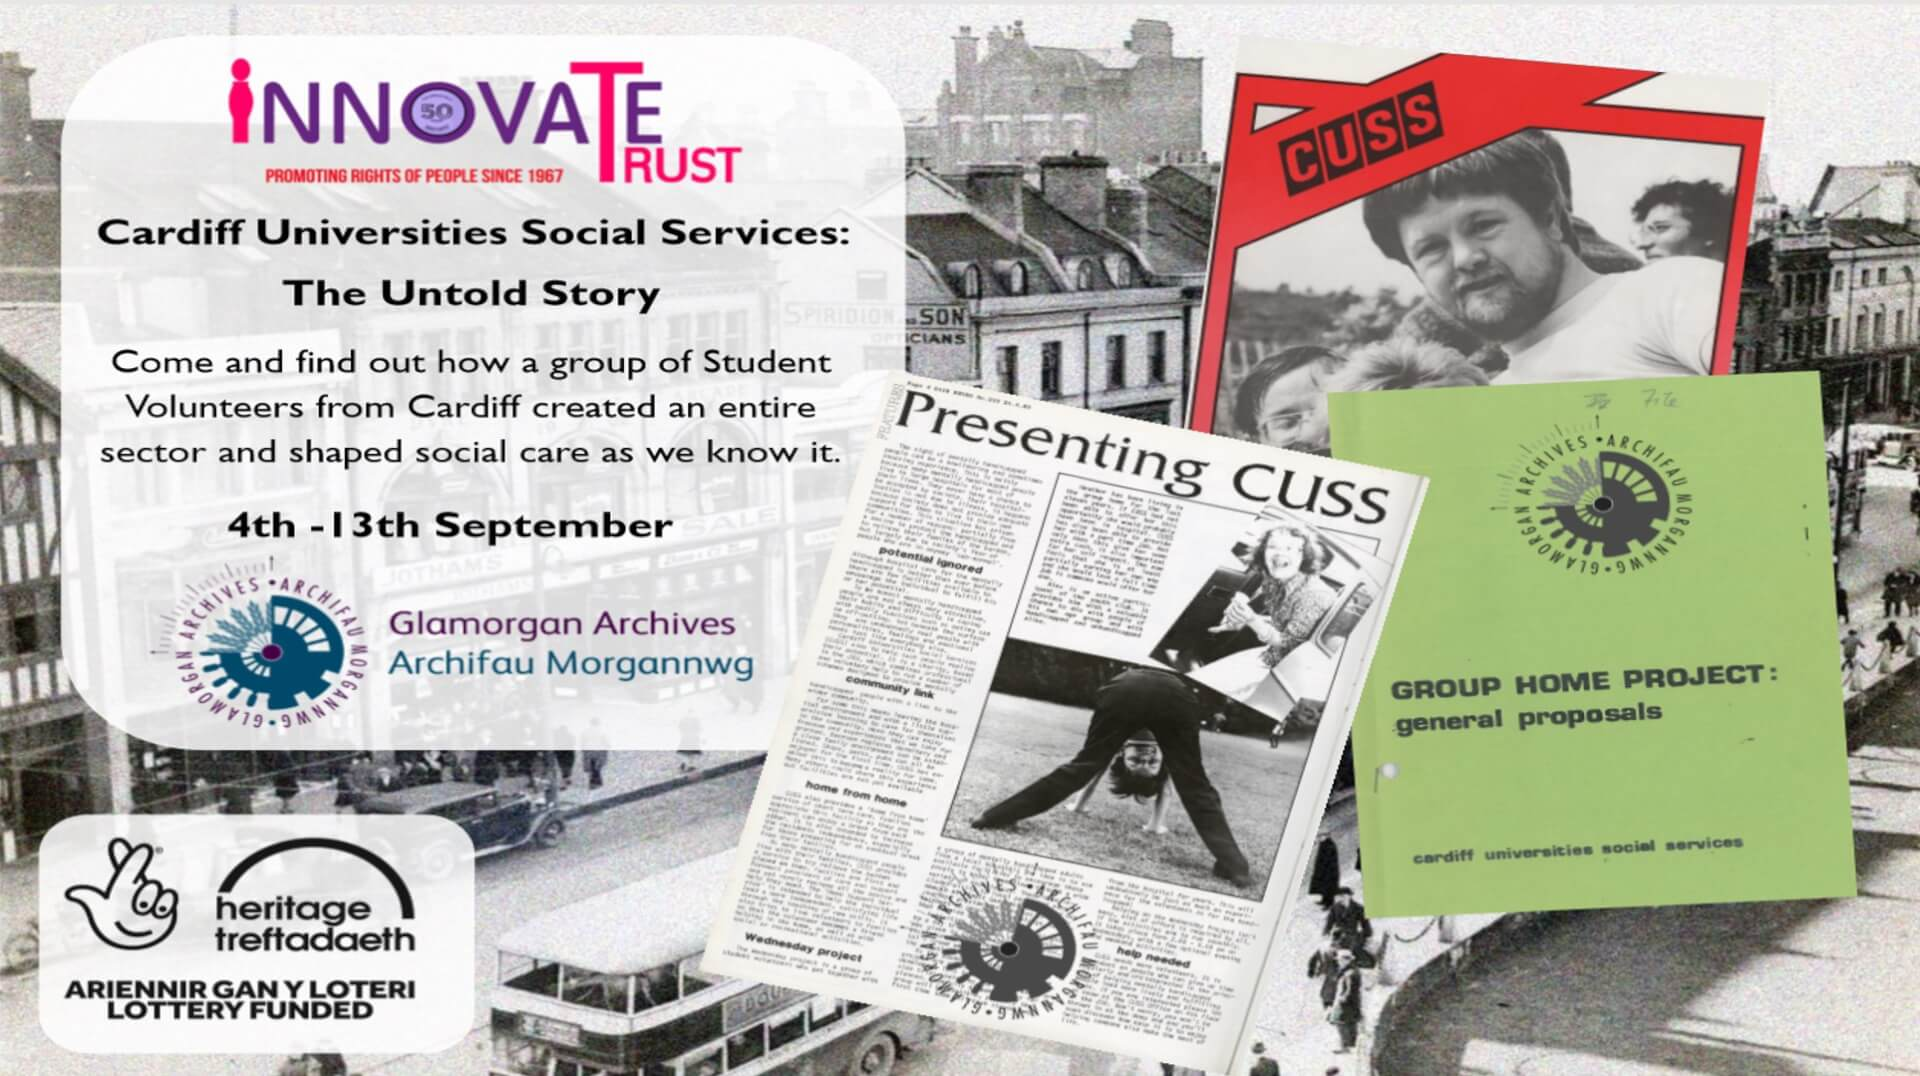 Cardiff Universities Social Services: The Untold Story